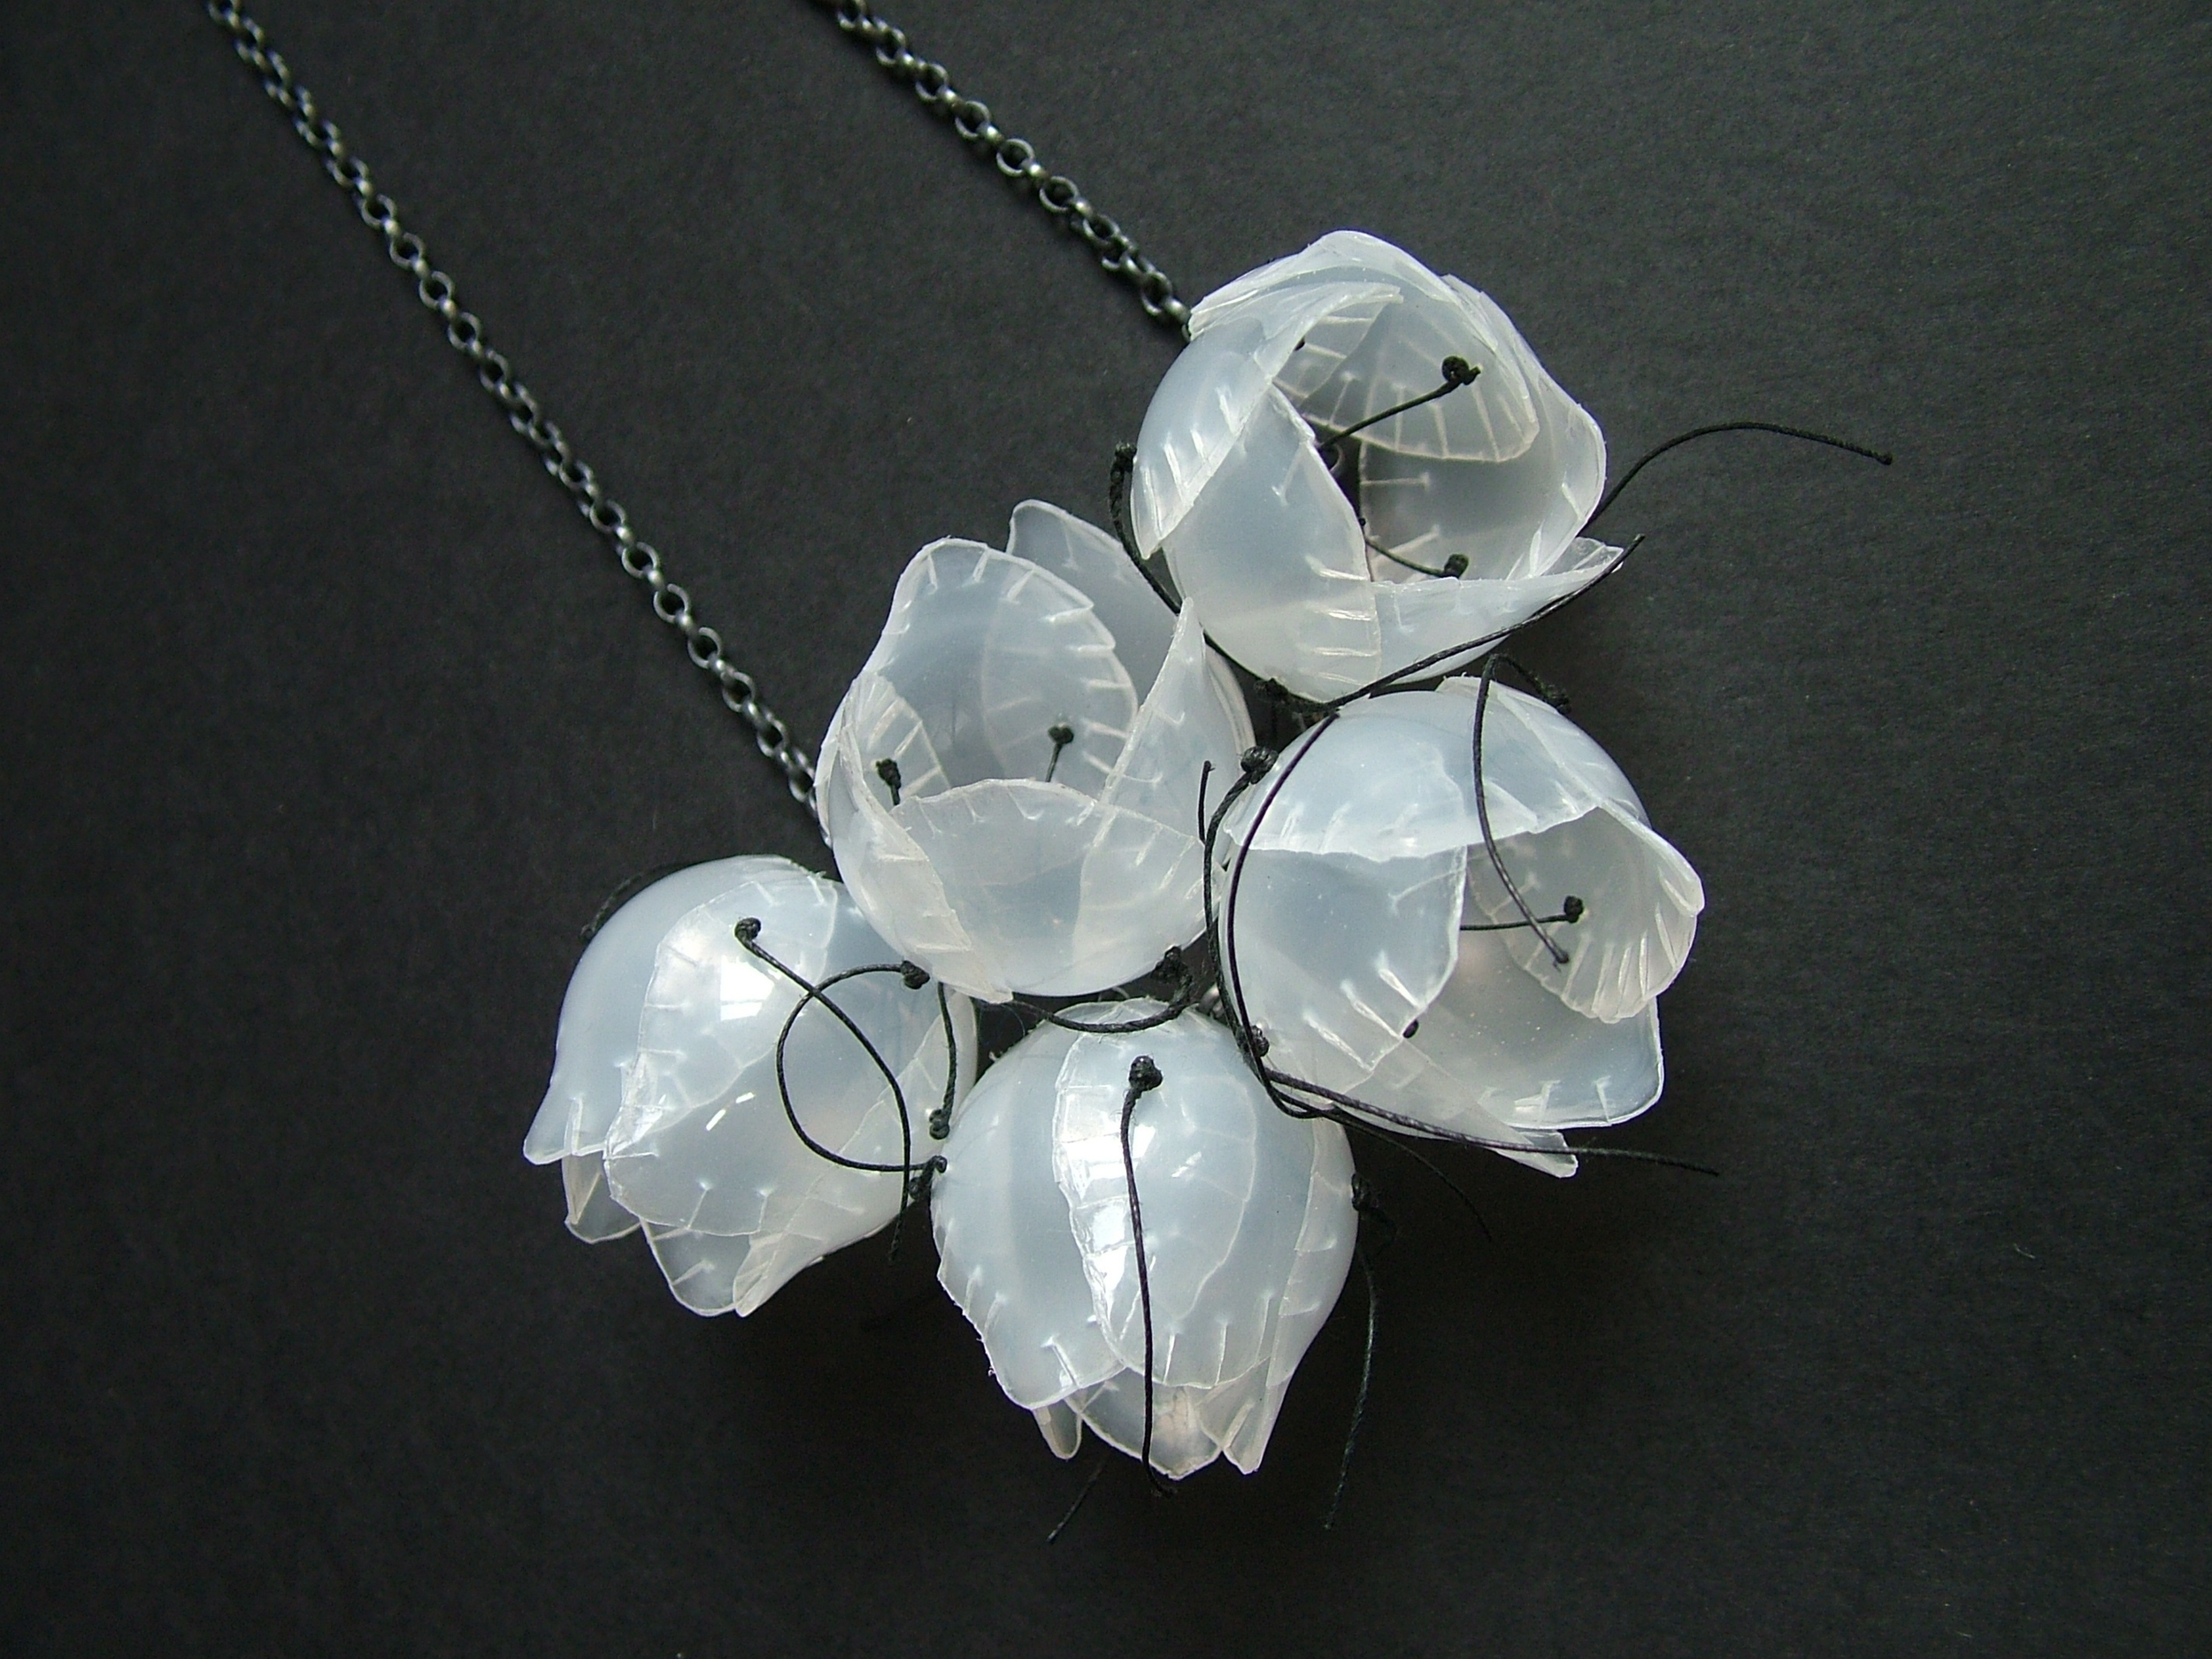 Cluster Necklace- contact lens containers and sterling silver